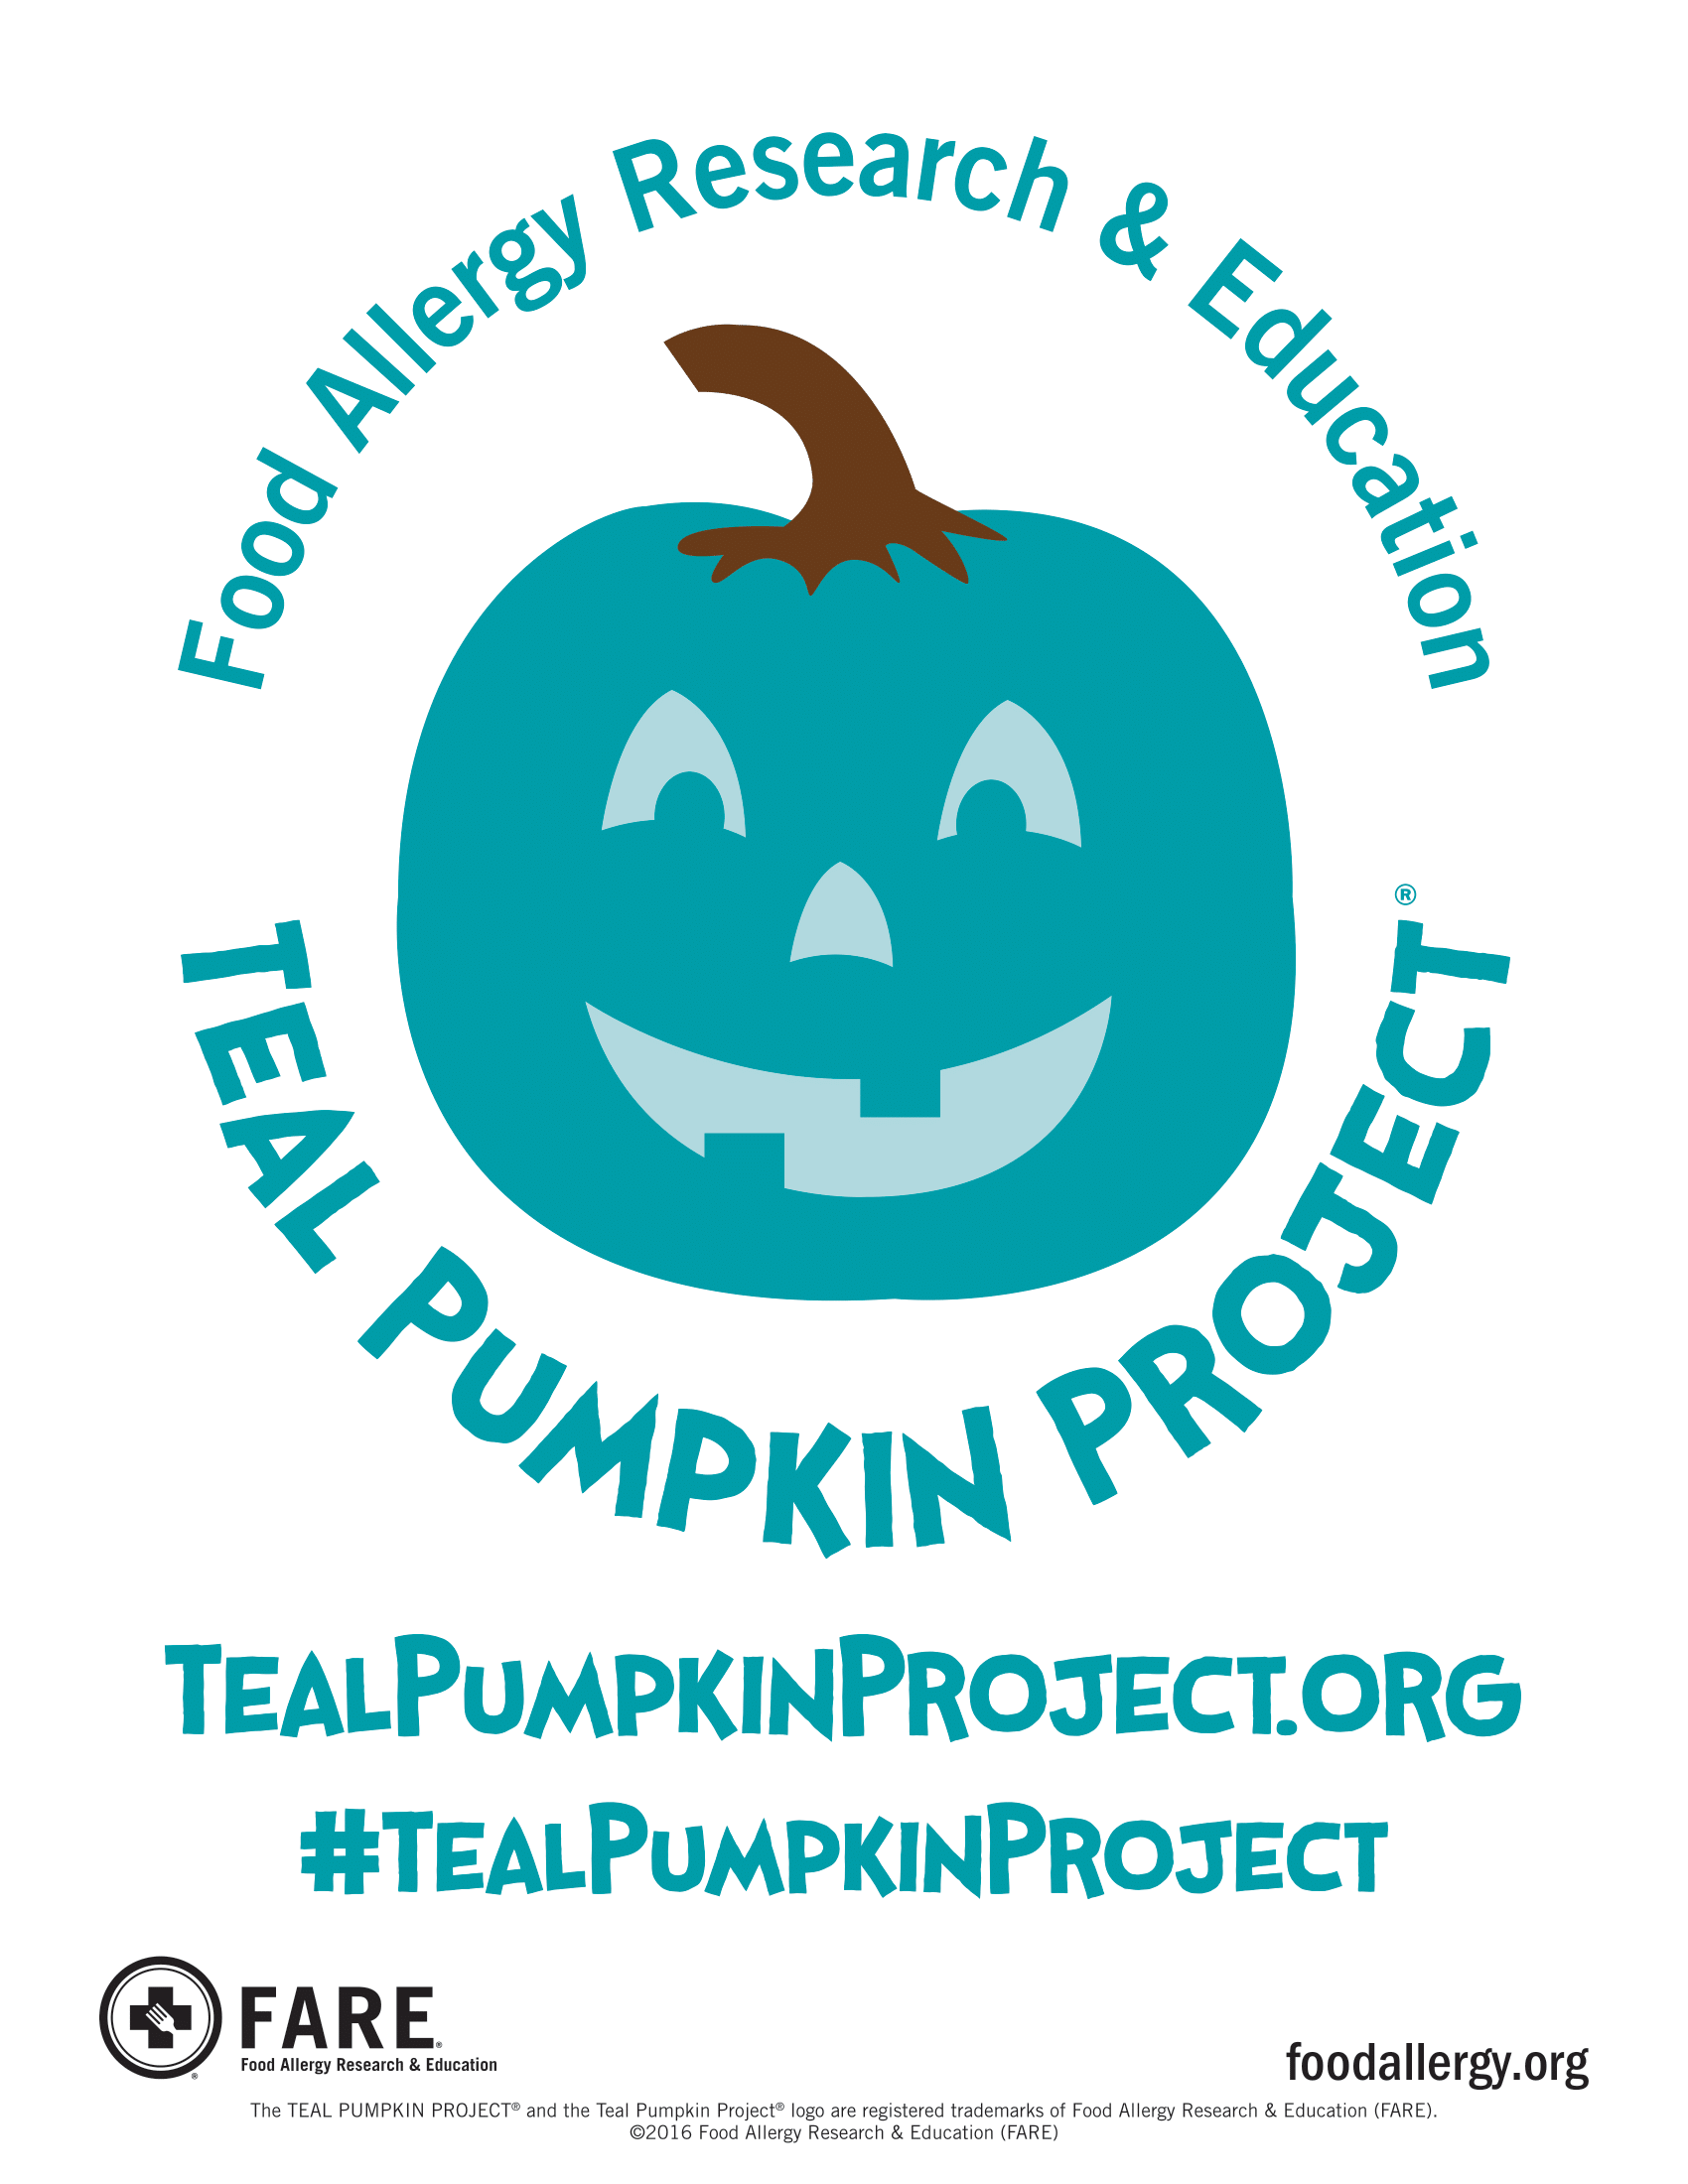 TPP Teal Pumpkin Project SIgnDownload 1 1 - It's Time to Get Teal